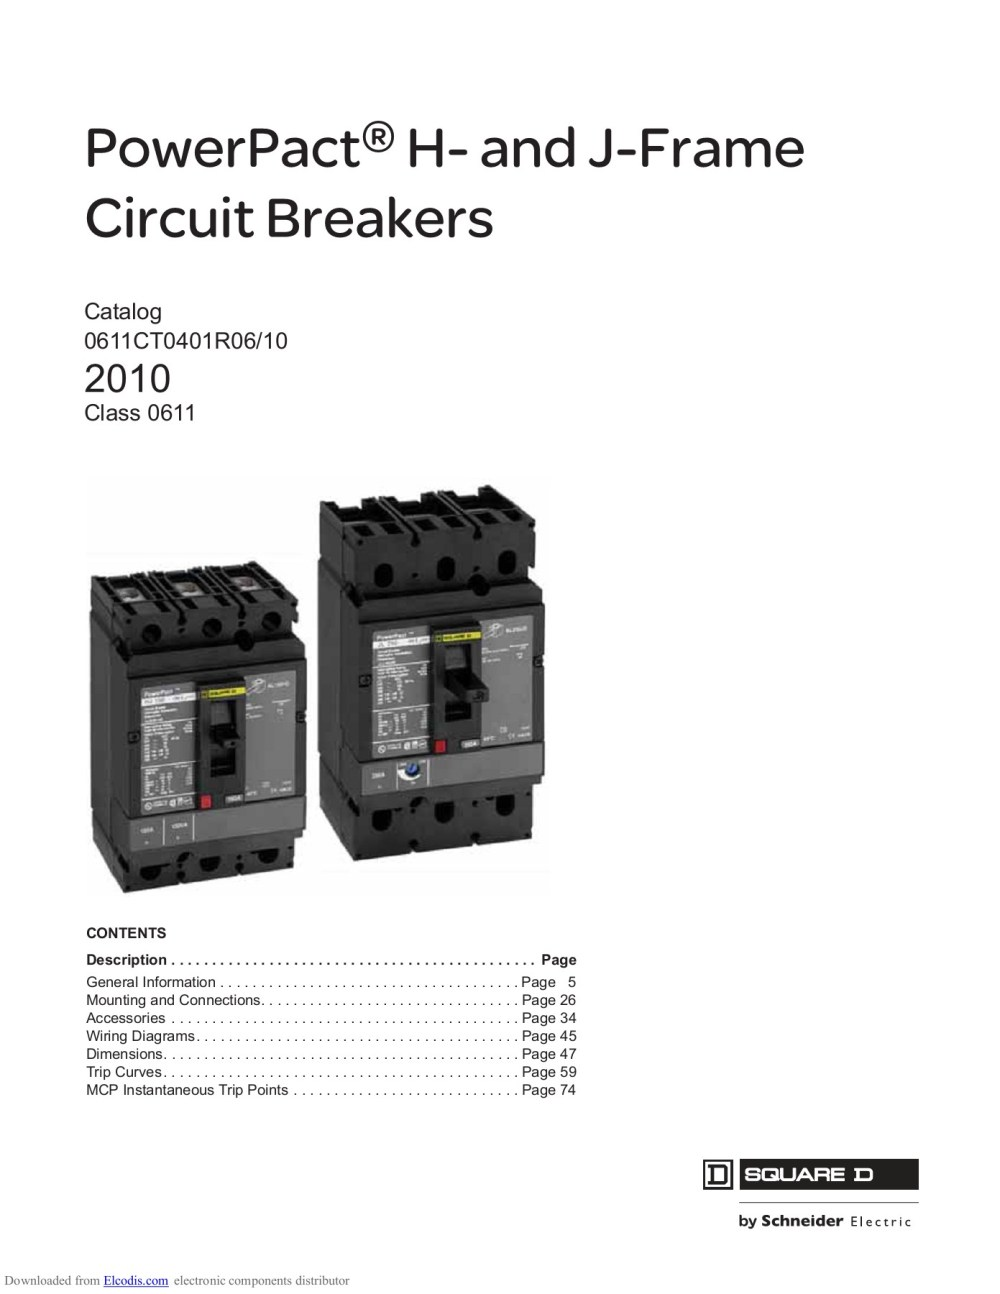 medium resolution of powerpact h and j frame circuit breakers catalog 0611ct0401r06 10 2010 class 0611 contents description